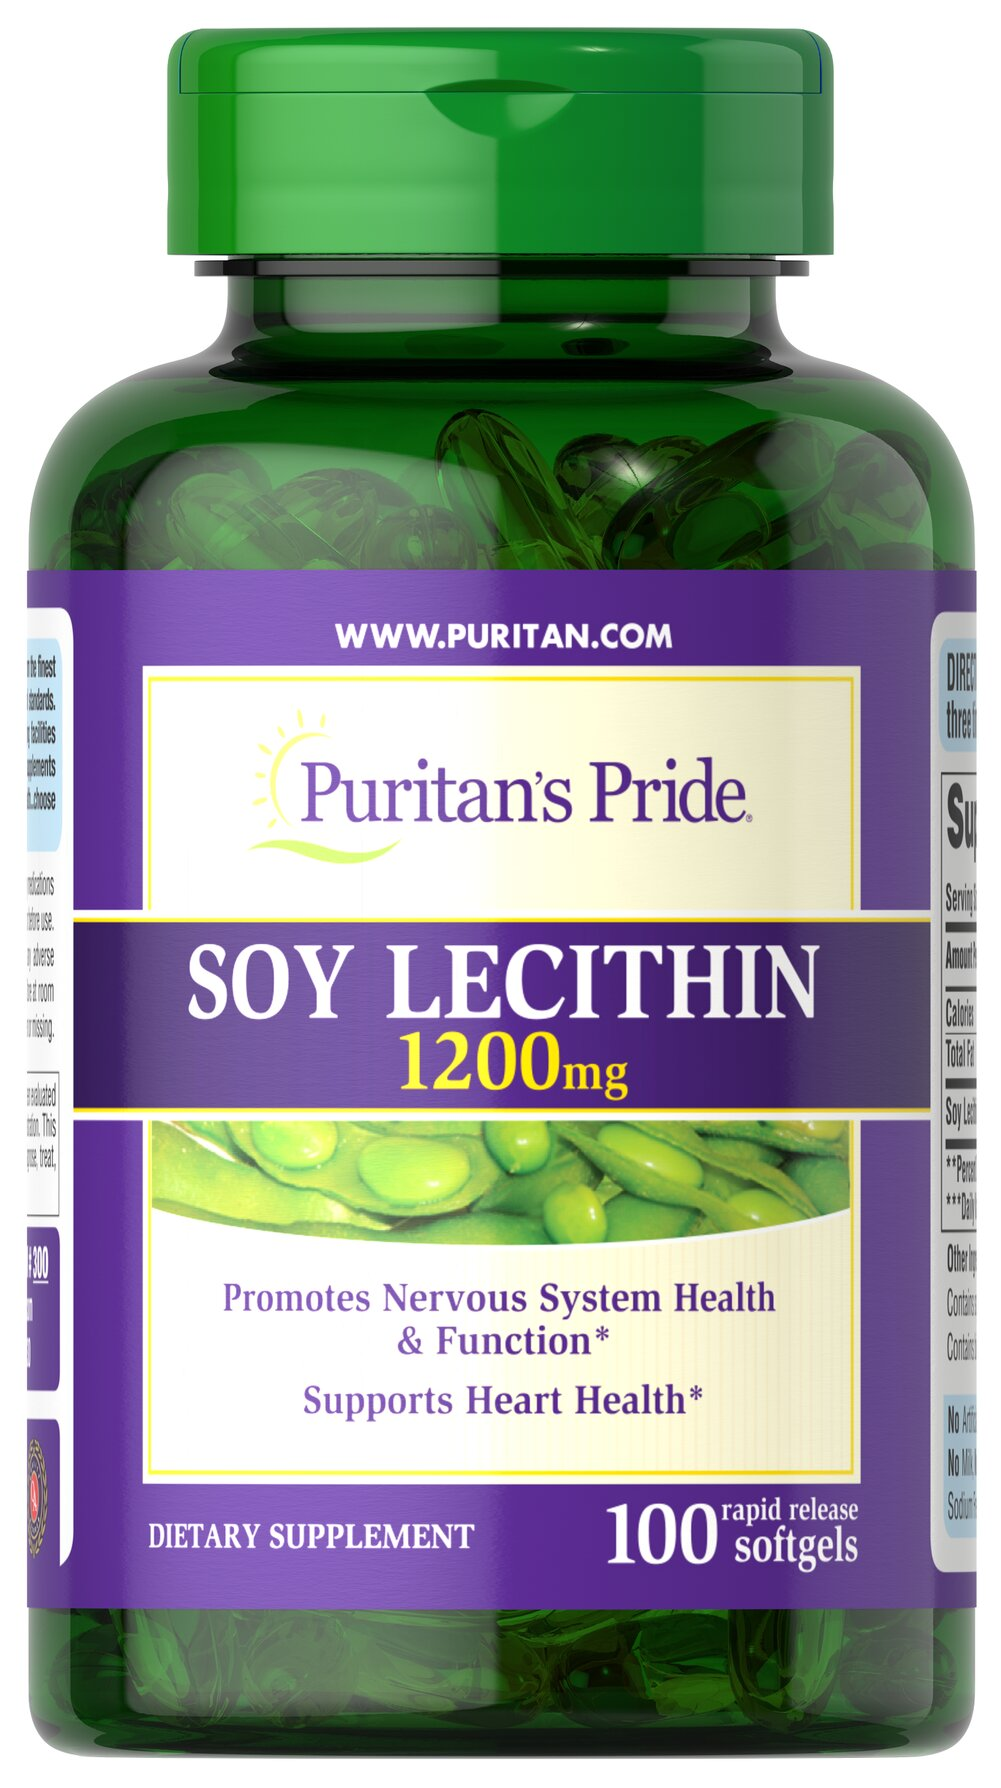 Soy Lecithin 1200 mg <p>Lecithin is an important natural source of Choline and Inositol, two nutrients important for the proper functioning of the body.** Since levels of phospholipids in the brain can decline as you get older, it may be especially important to supplement with a high-quality Lecithin formula from Puritan's Pride.</p> 100 Softgels 1200 mg $10.99